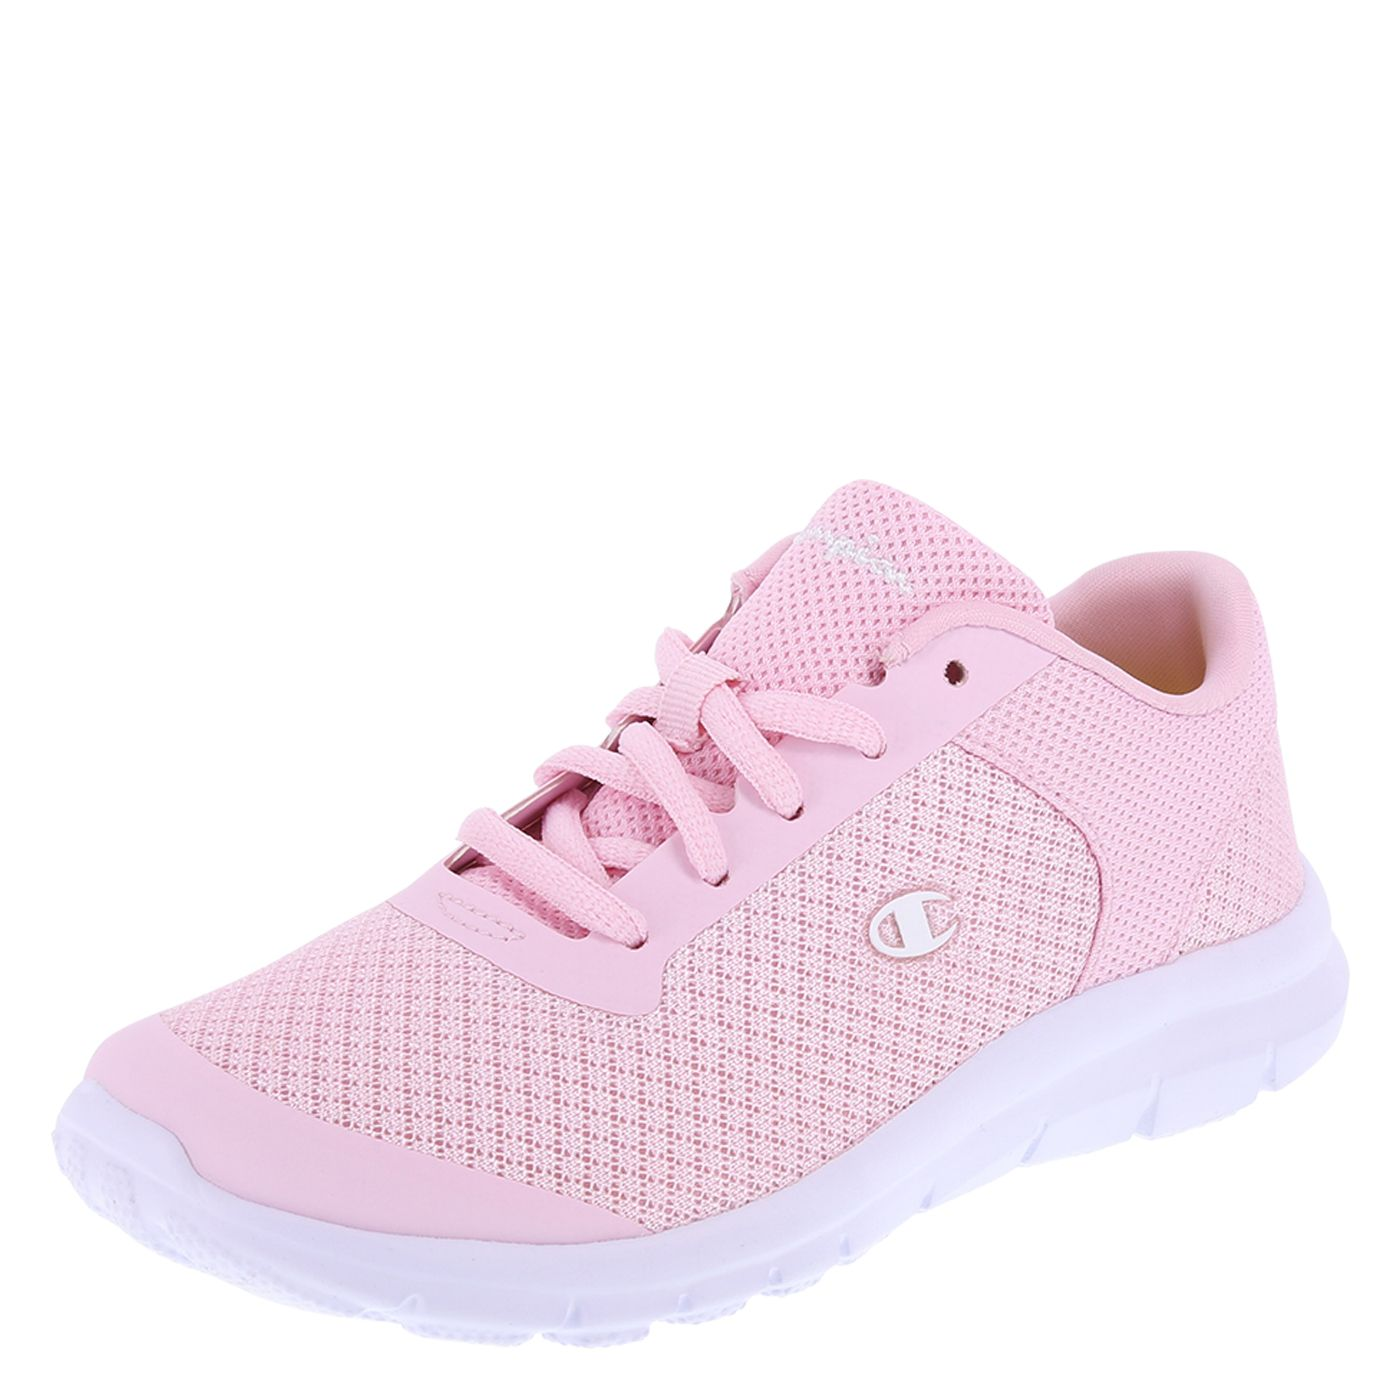 f12a76f962c562 Shoes and Sneakers. Champion Performance Girls Trainer Shoe